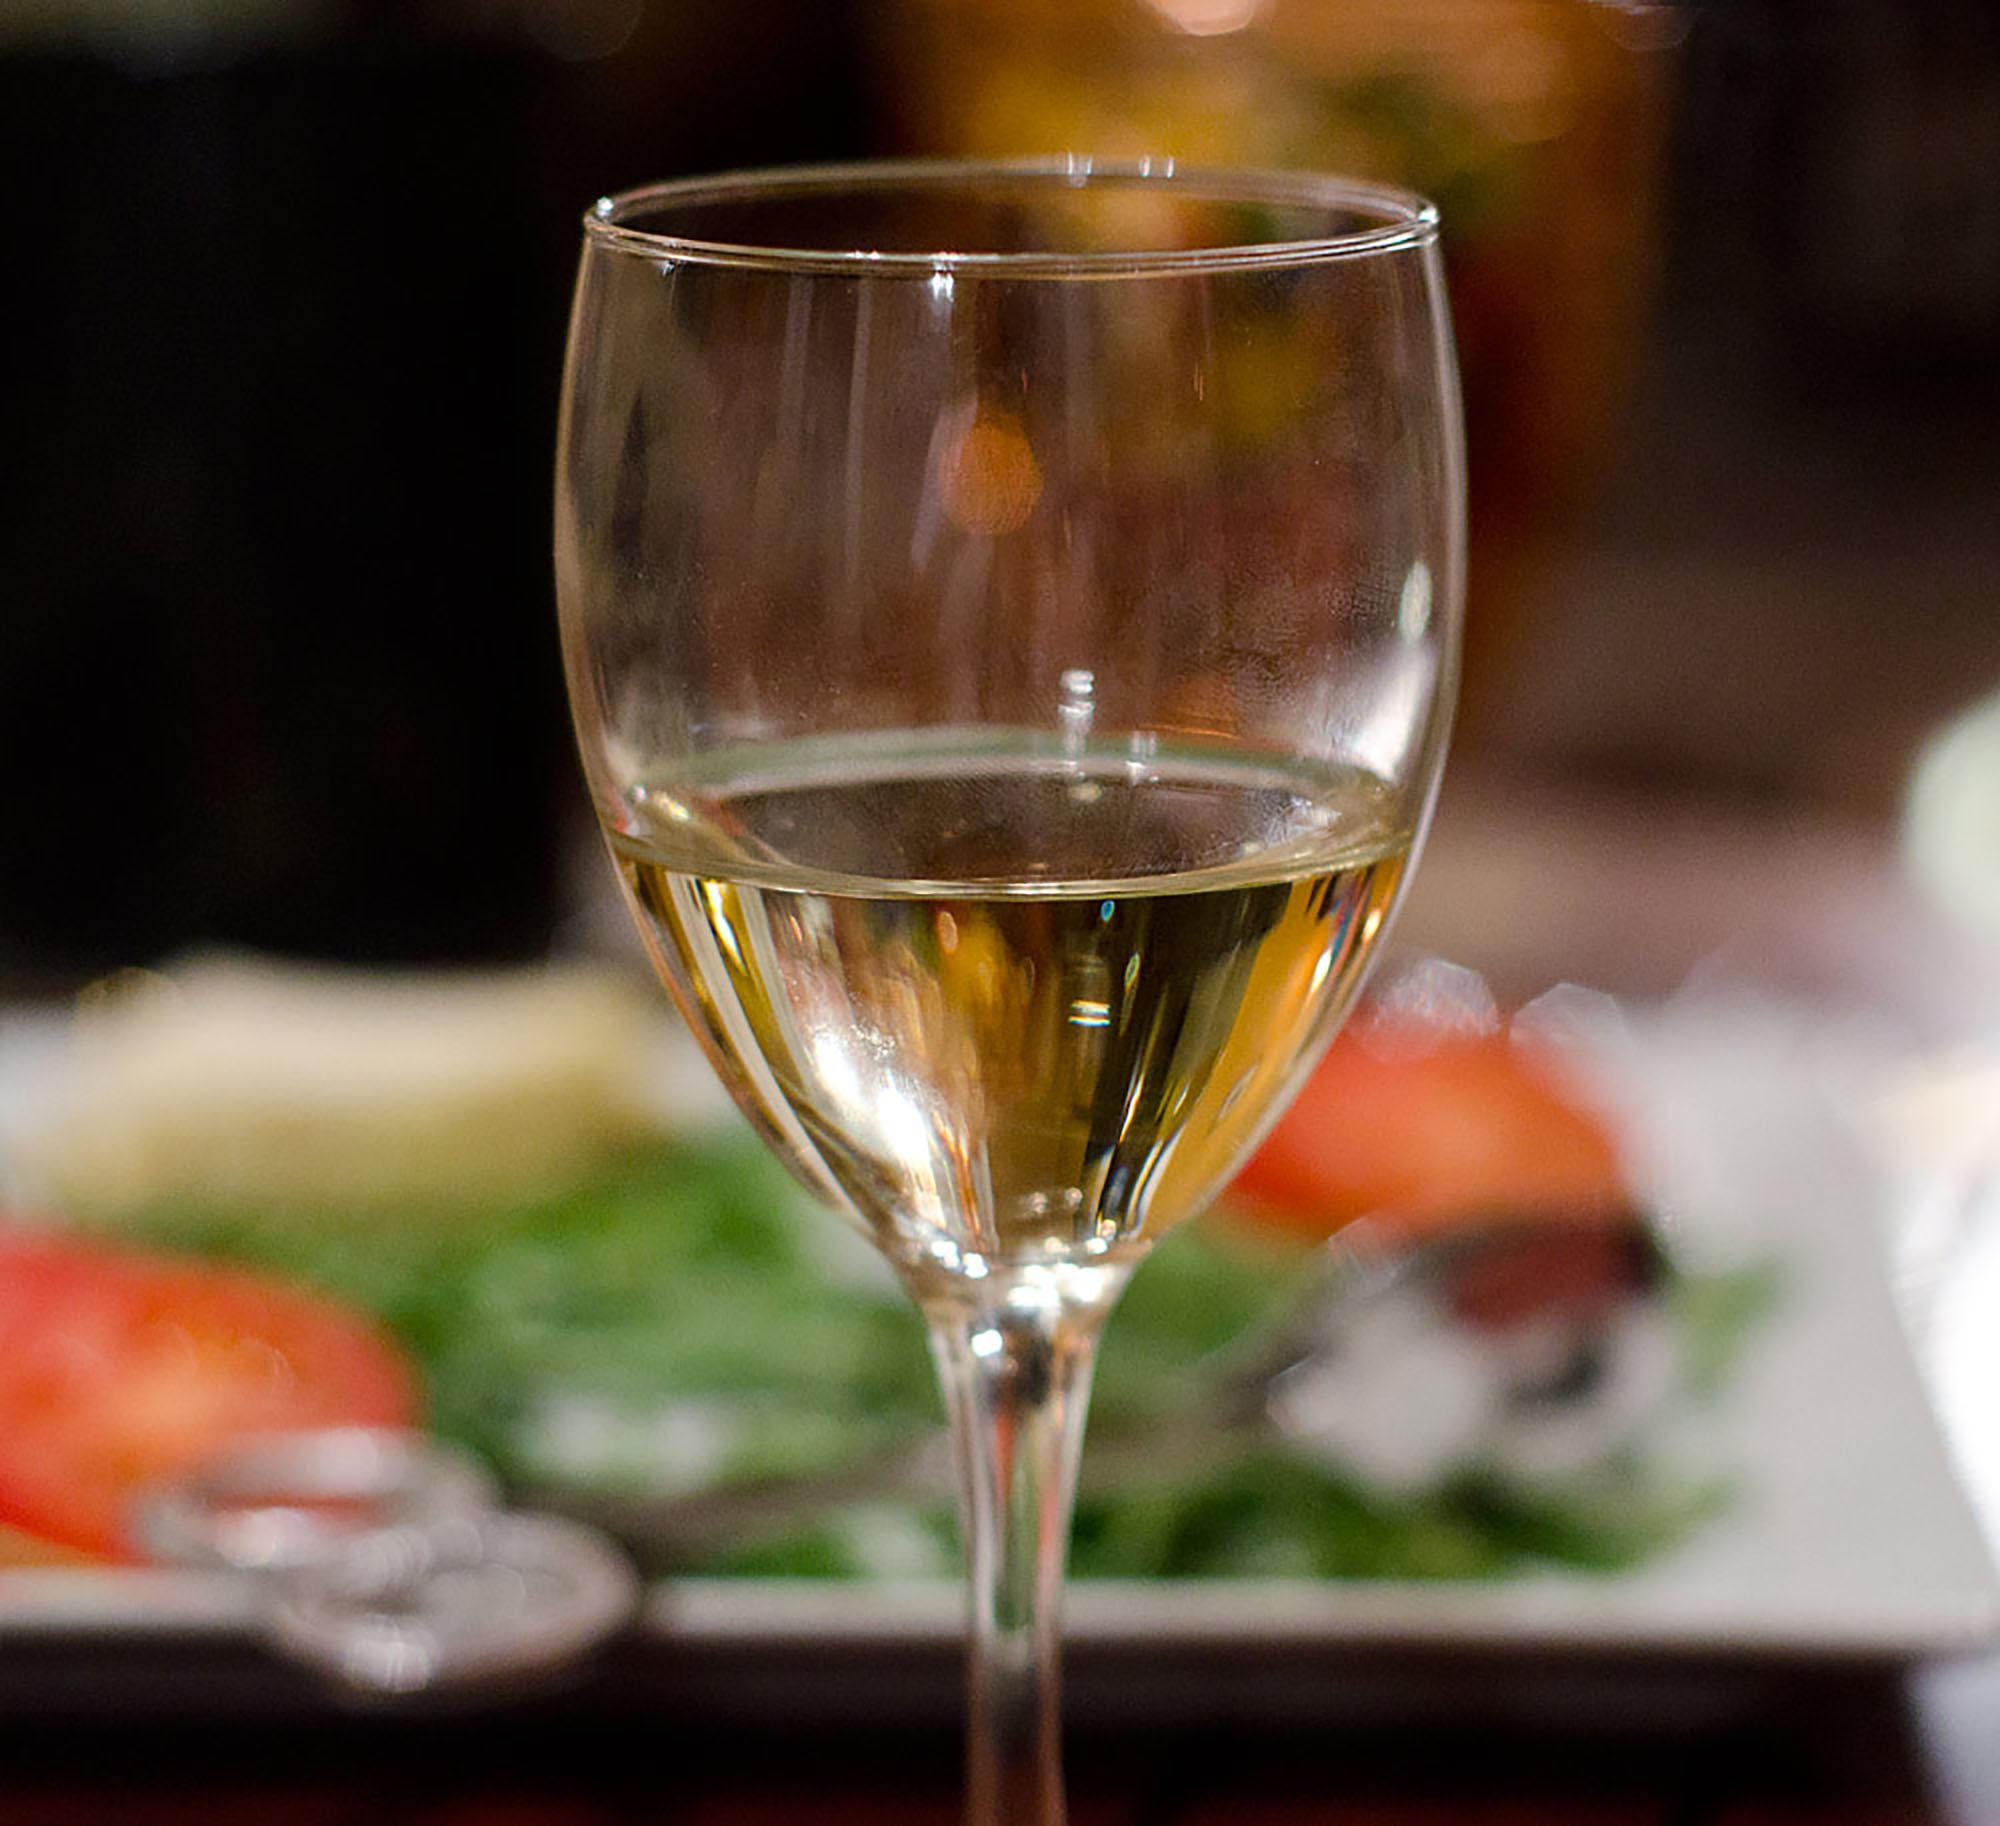 WINE PAIRING (knowing the Sherry wines)